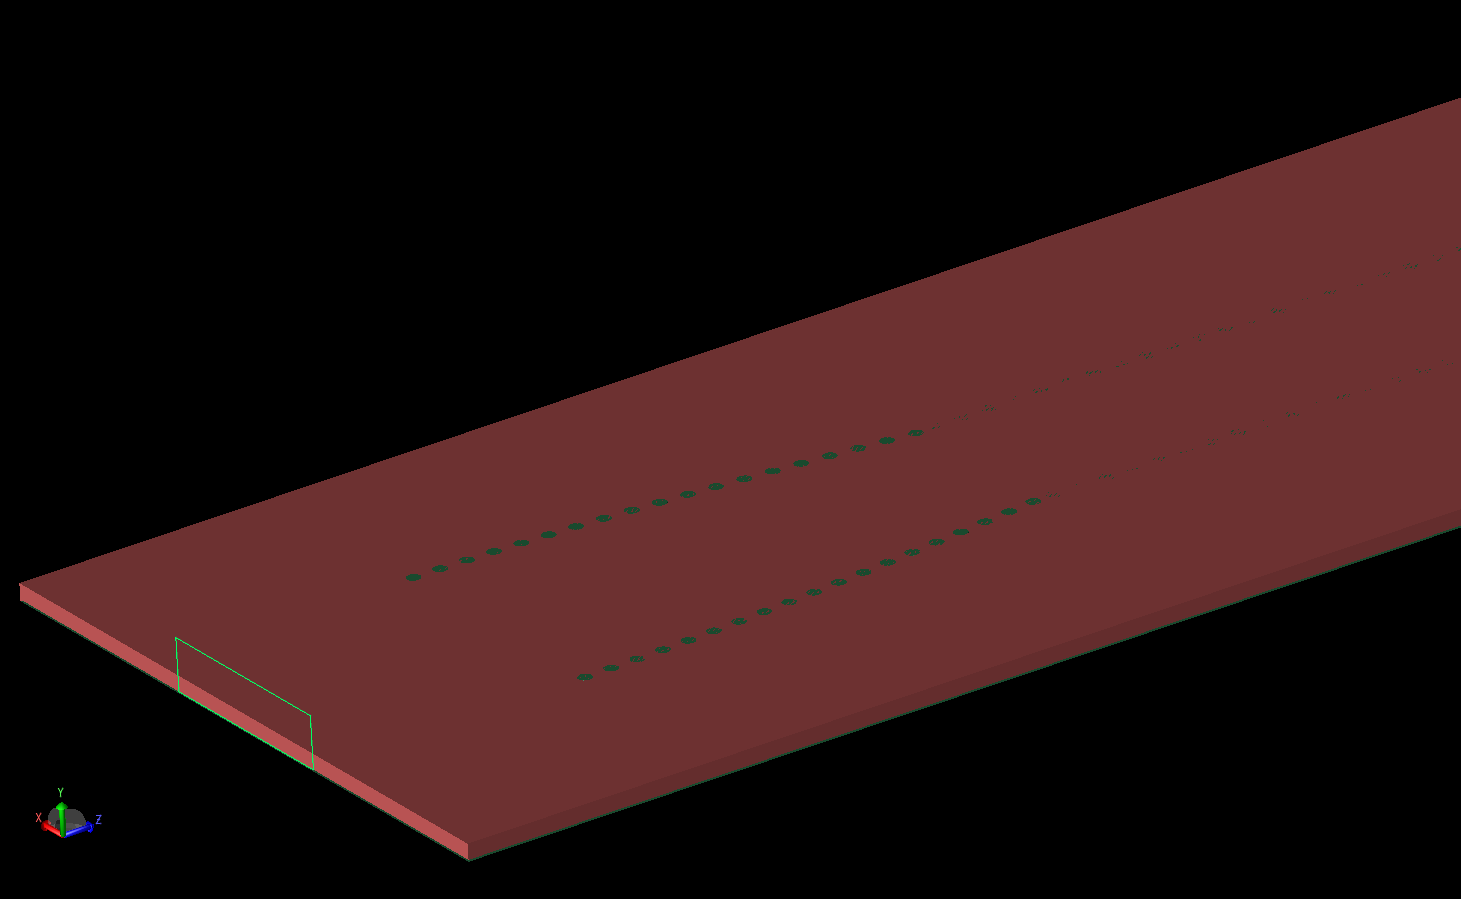 Figure 4: With the top microstrip layer removed, the substrate and some of the vias are visible in the antenna structure.